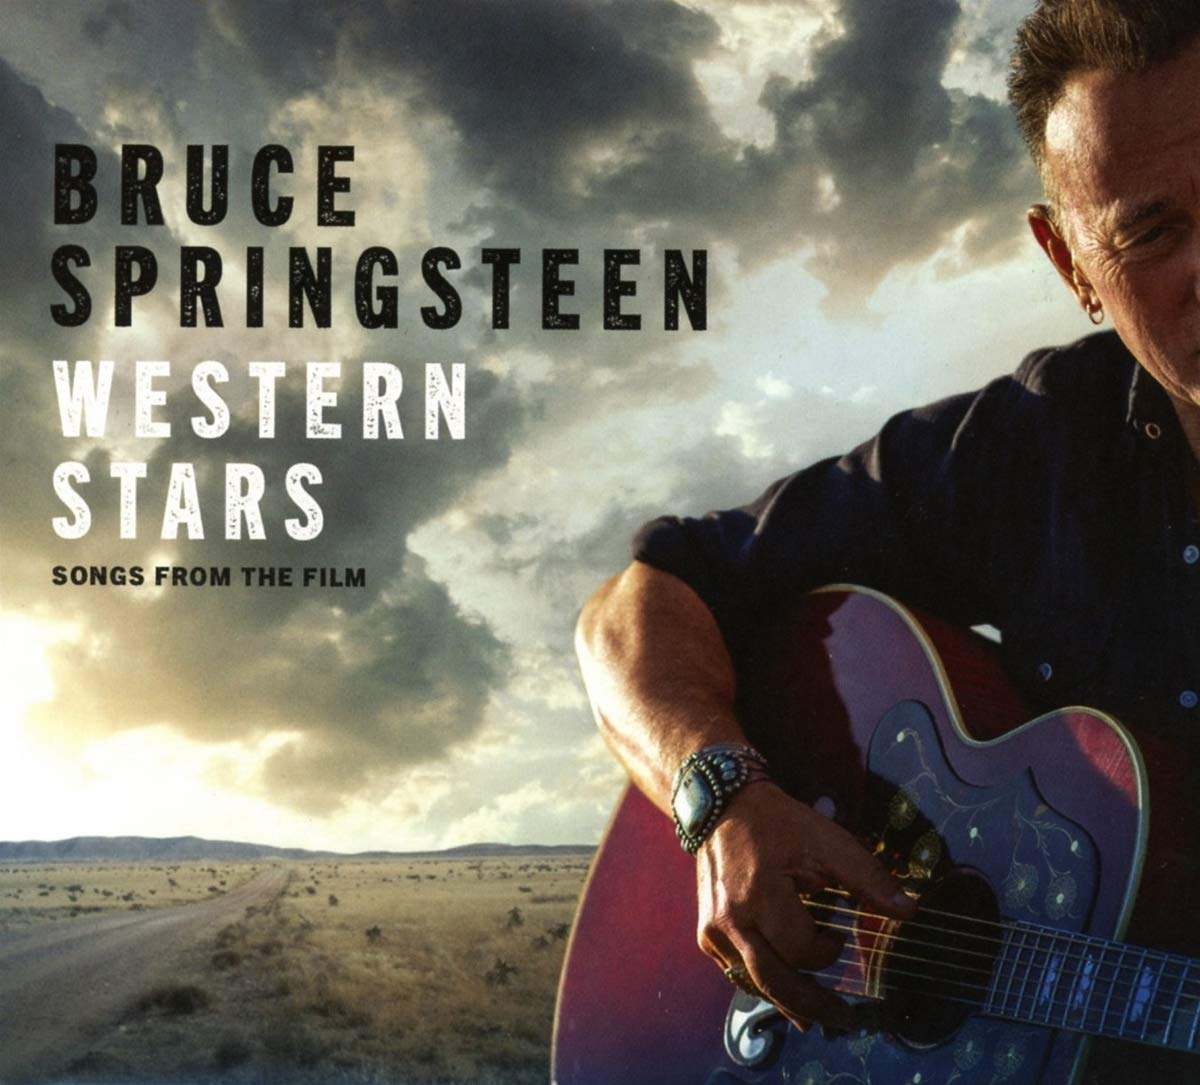 Bruce Springsteen Songs From The Film